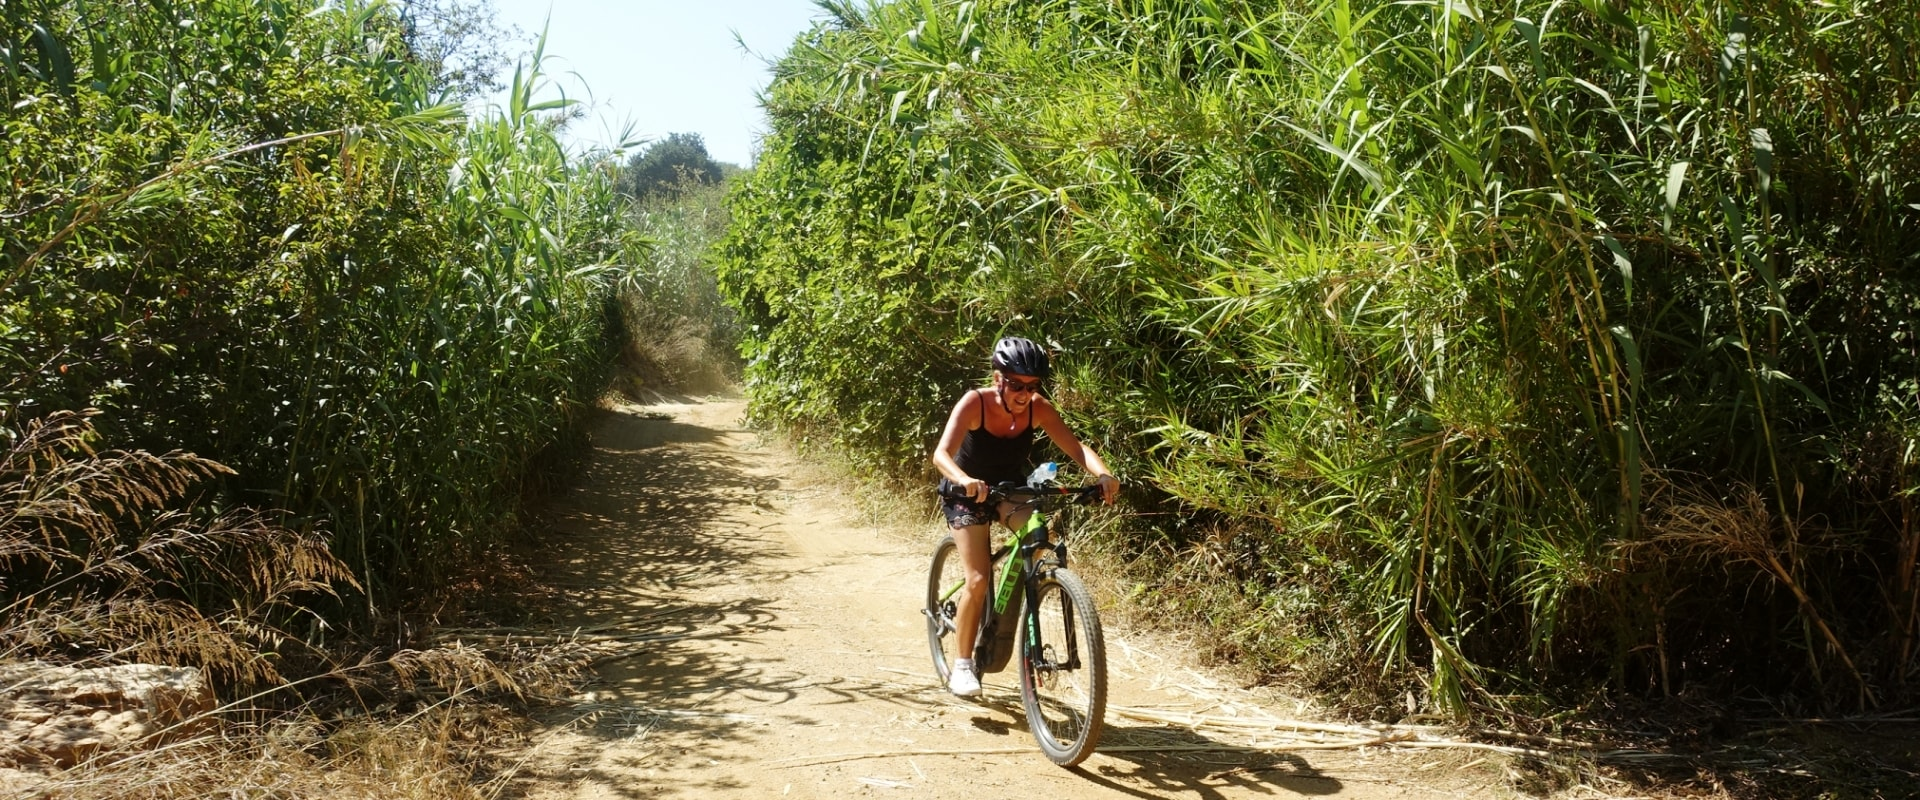 Lagoon ebike tour Crete Hersonissos Malia Stalis Analipsi Gouves Cube reaction bikes-through the bamboo trees-min